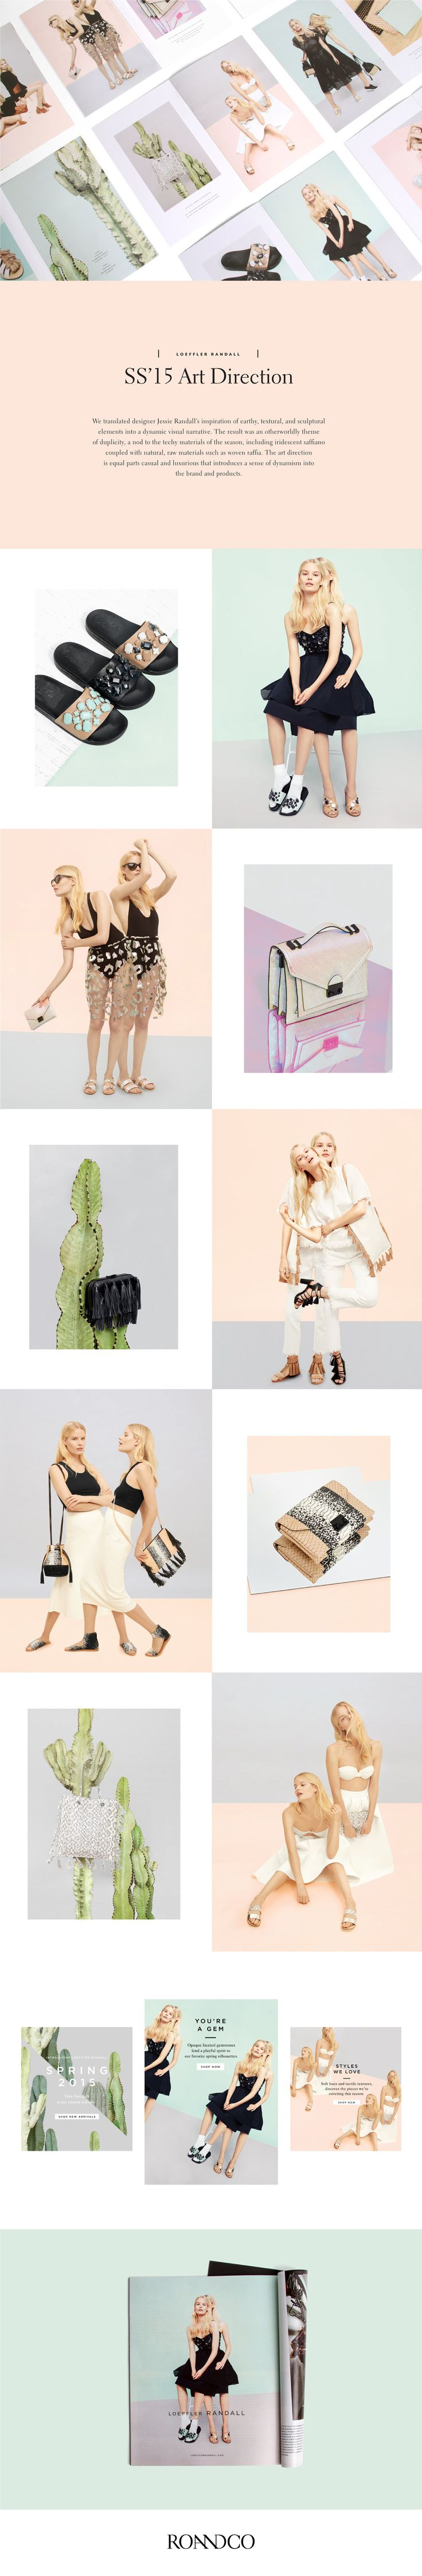 Loeffler Randall SS '15 Art Direction on Behance